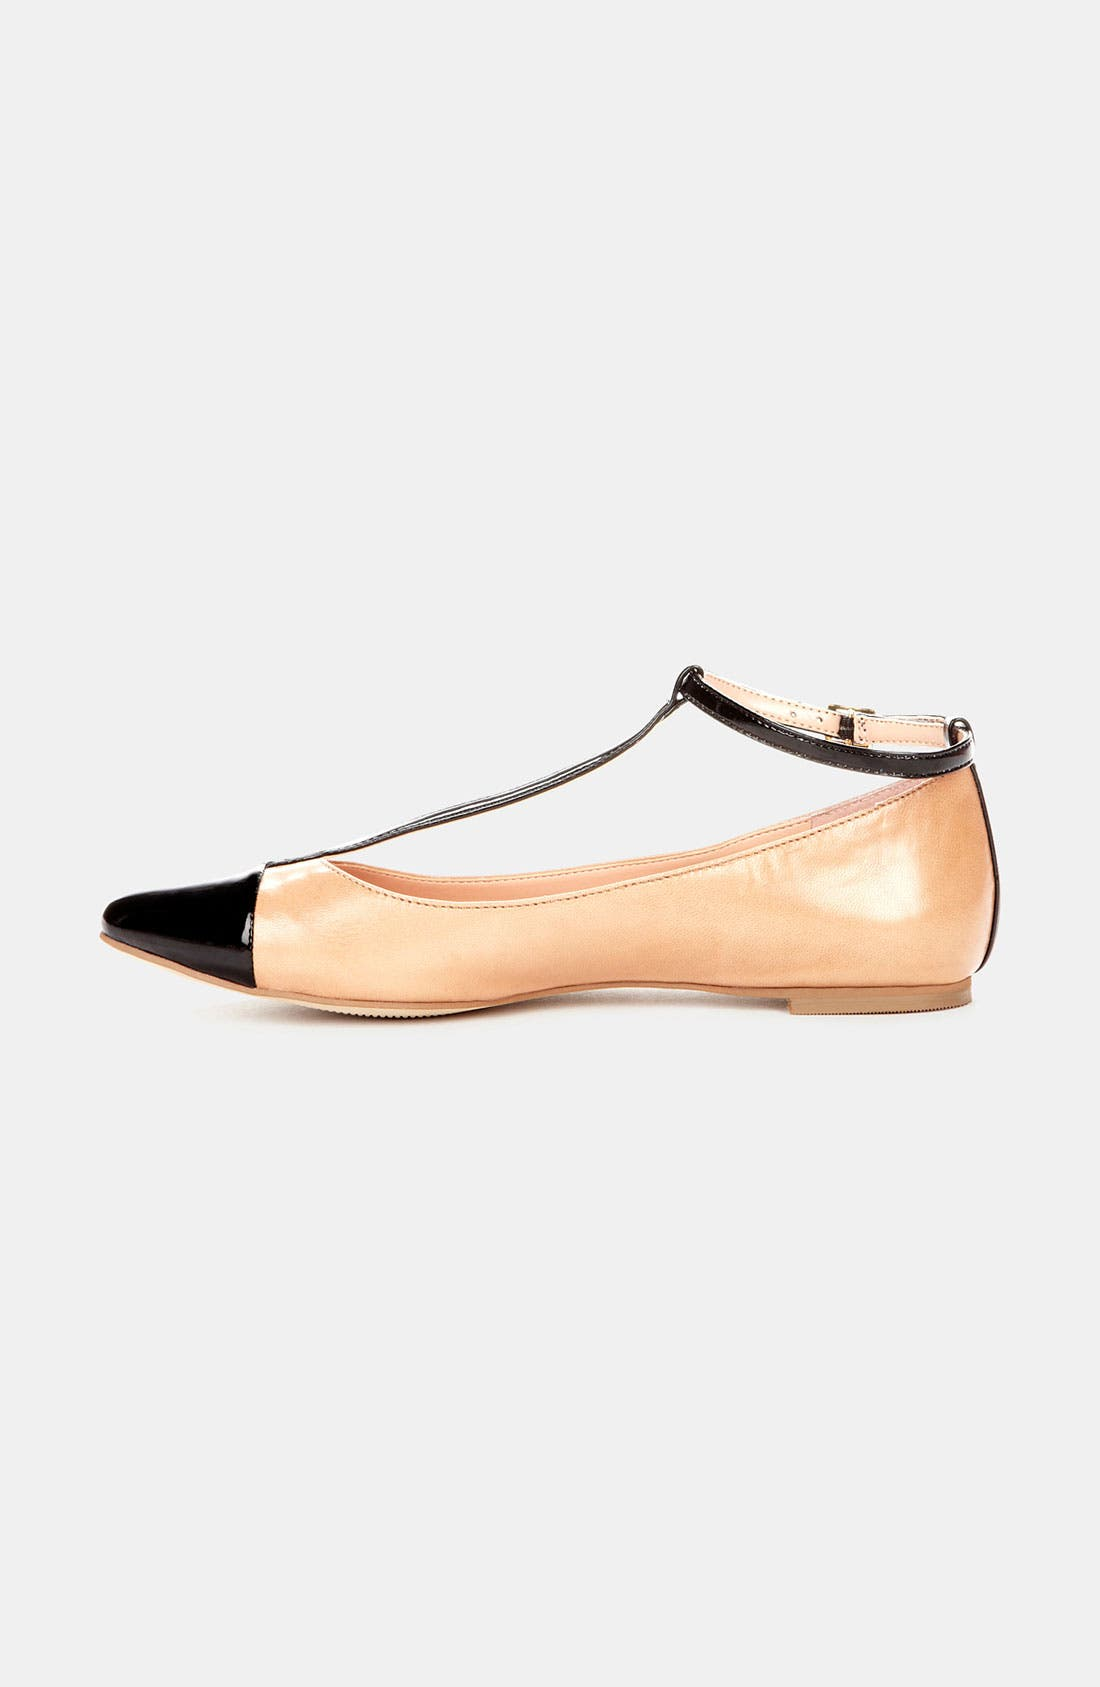 ,                             Julianne Hough for Sole Society 'Addy' Flat,                             Alternate thumbnail 12, color,                             101